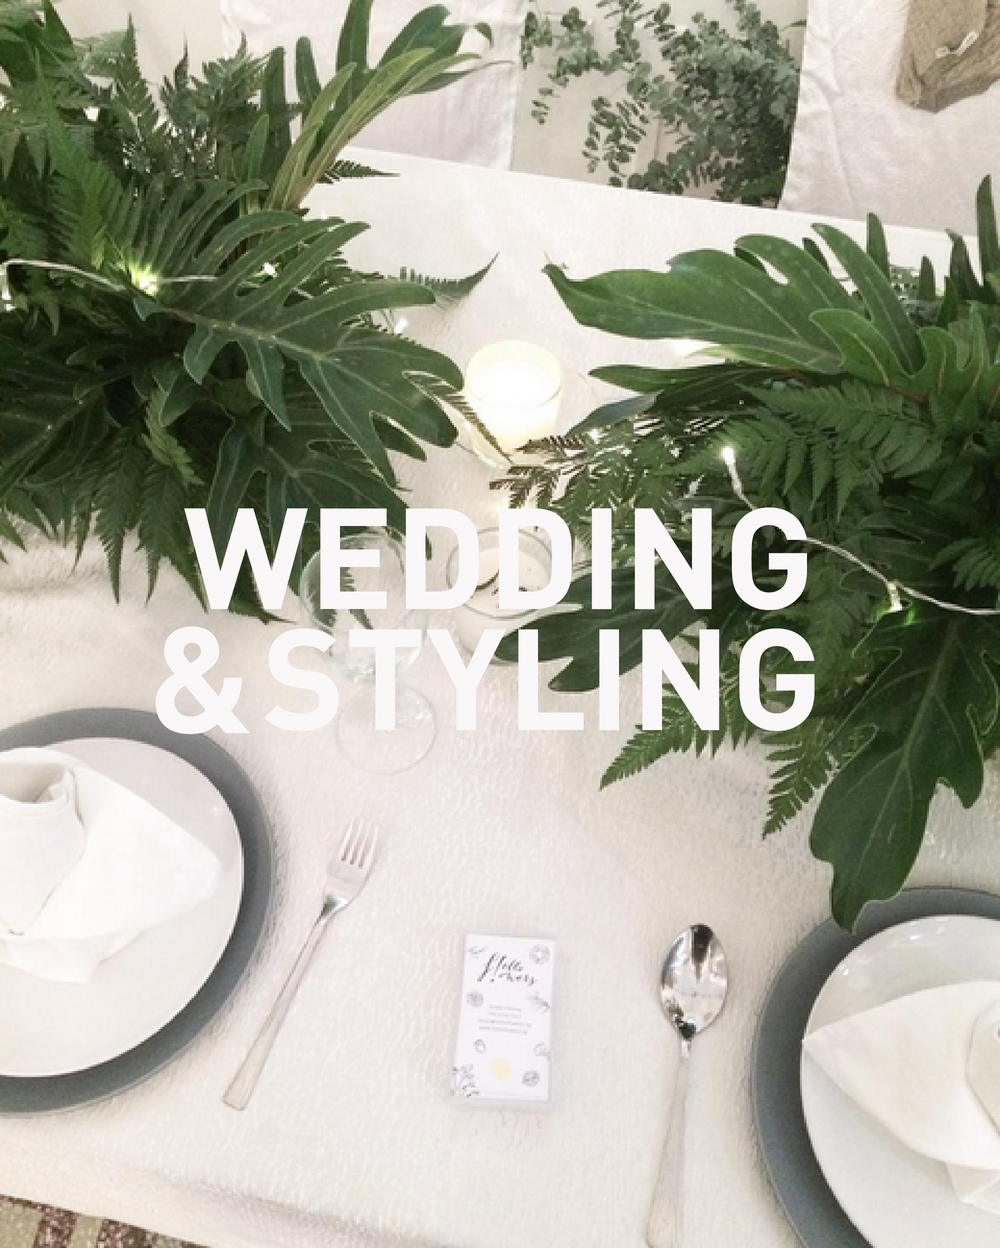 WEDDING&STYLING.jpg